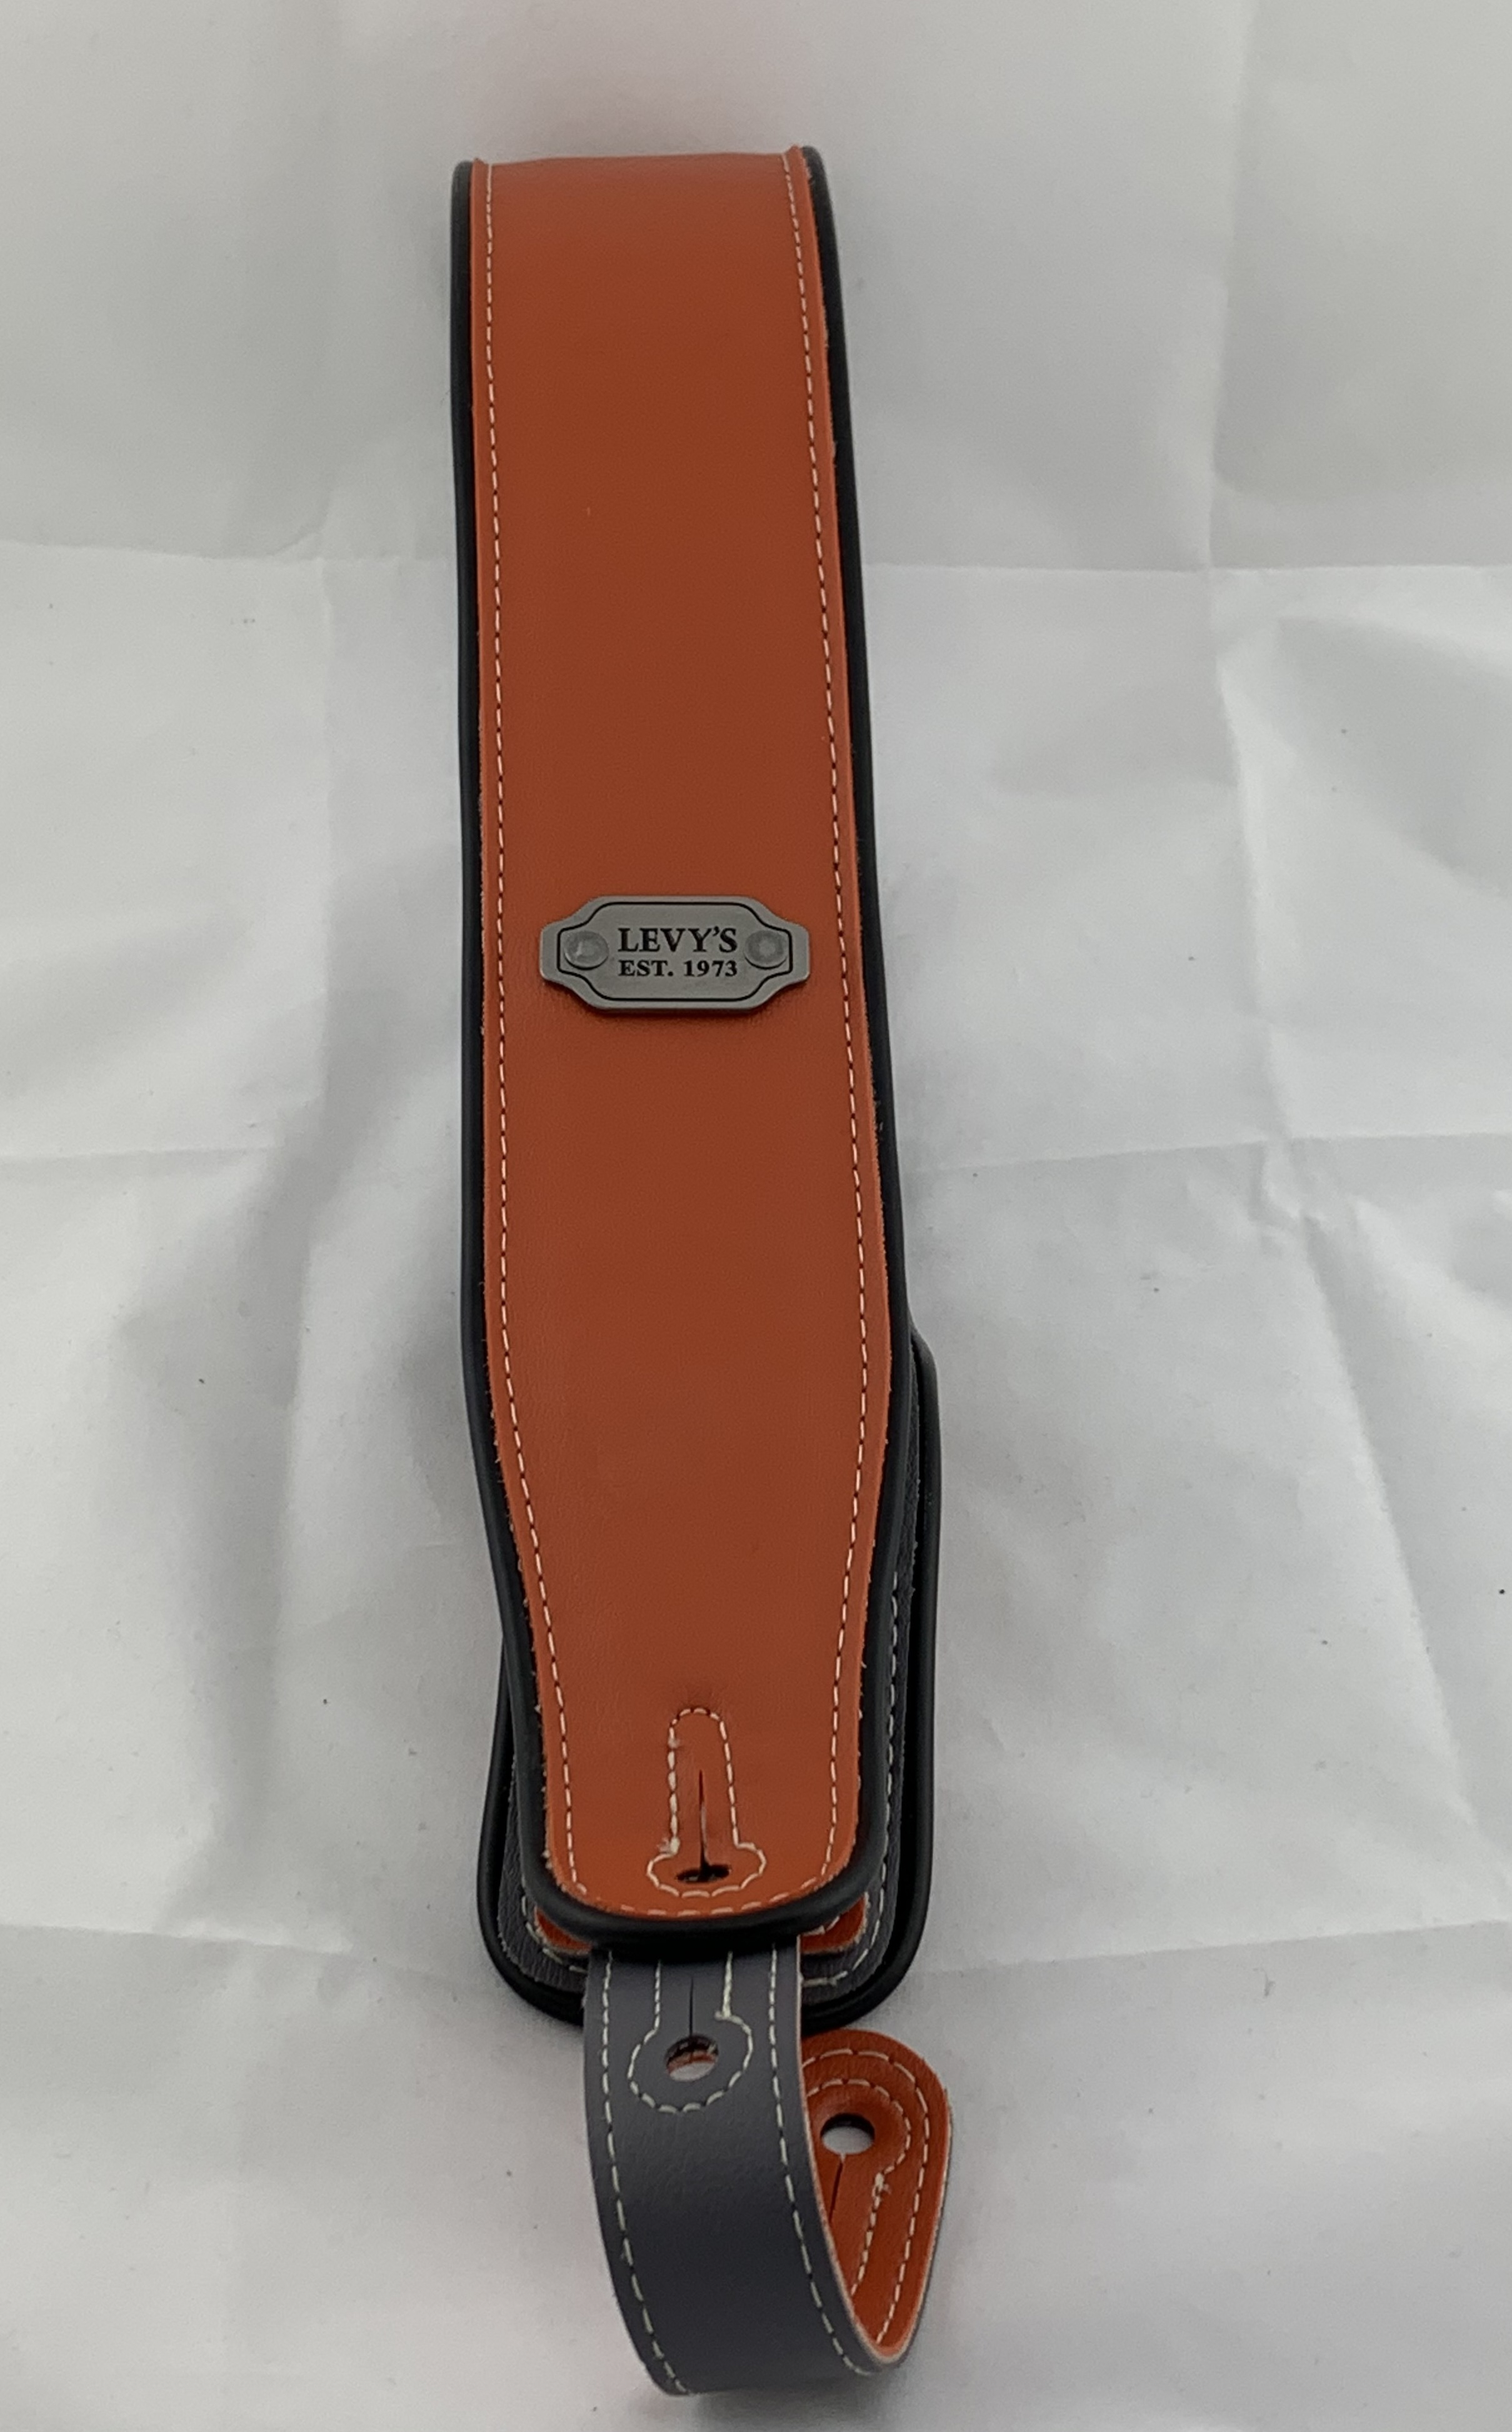 Levy's Leathers M26VP-ORGGRY 2 3/4